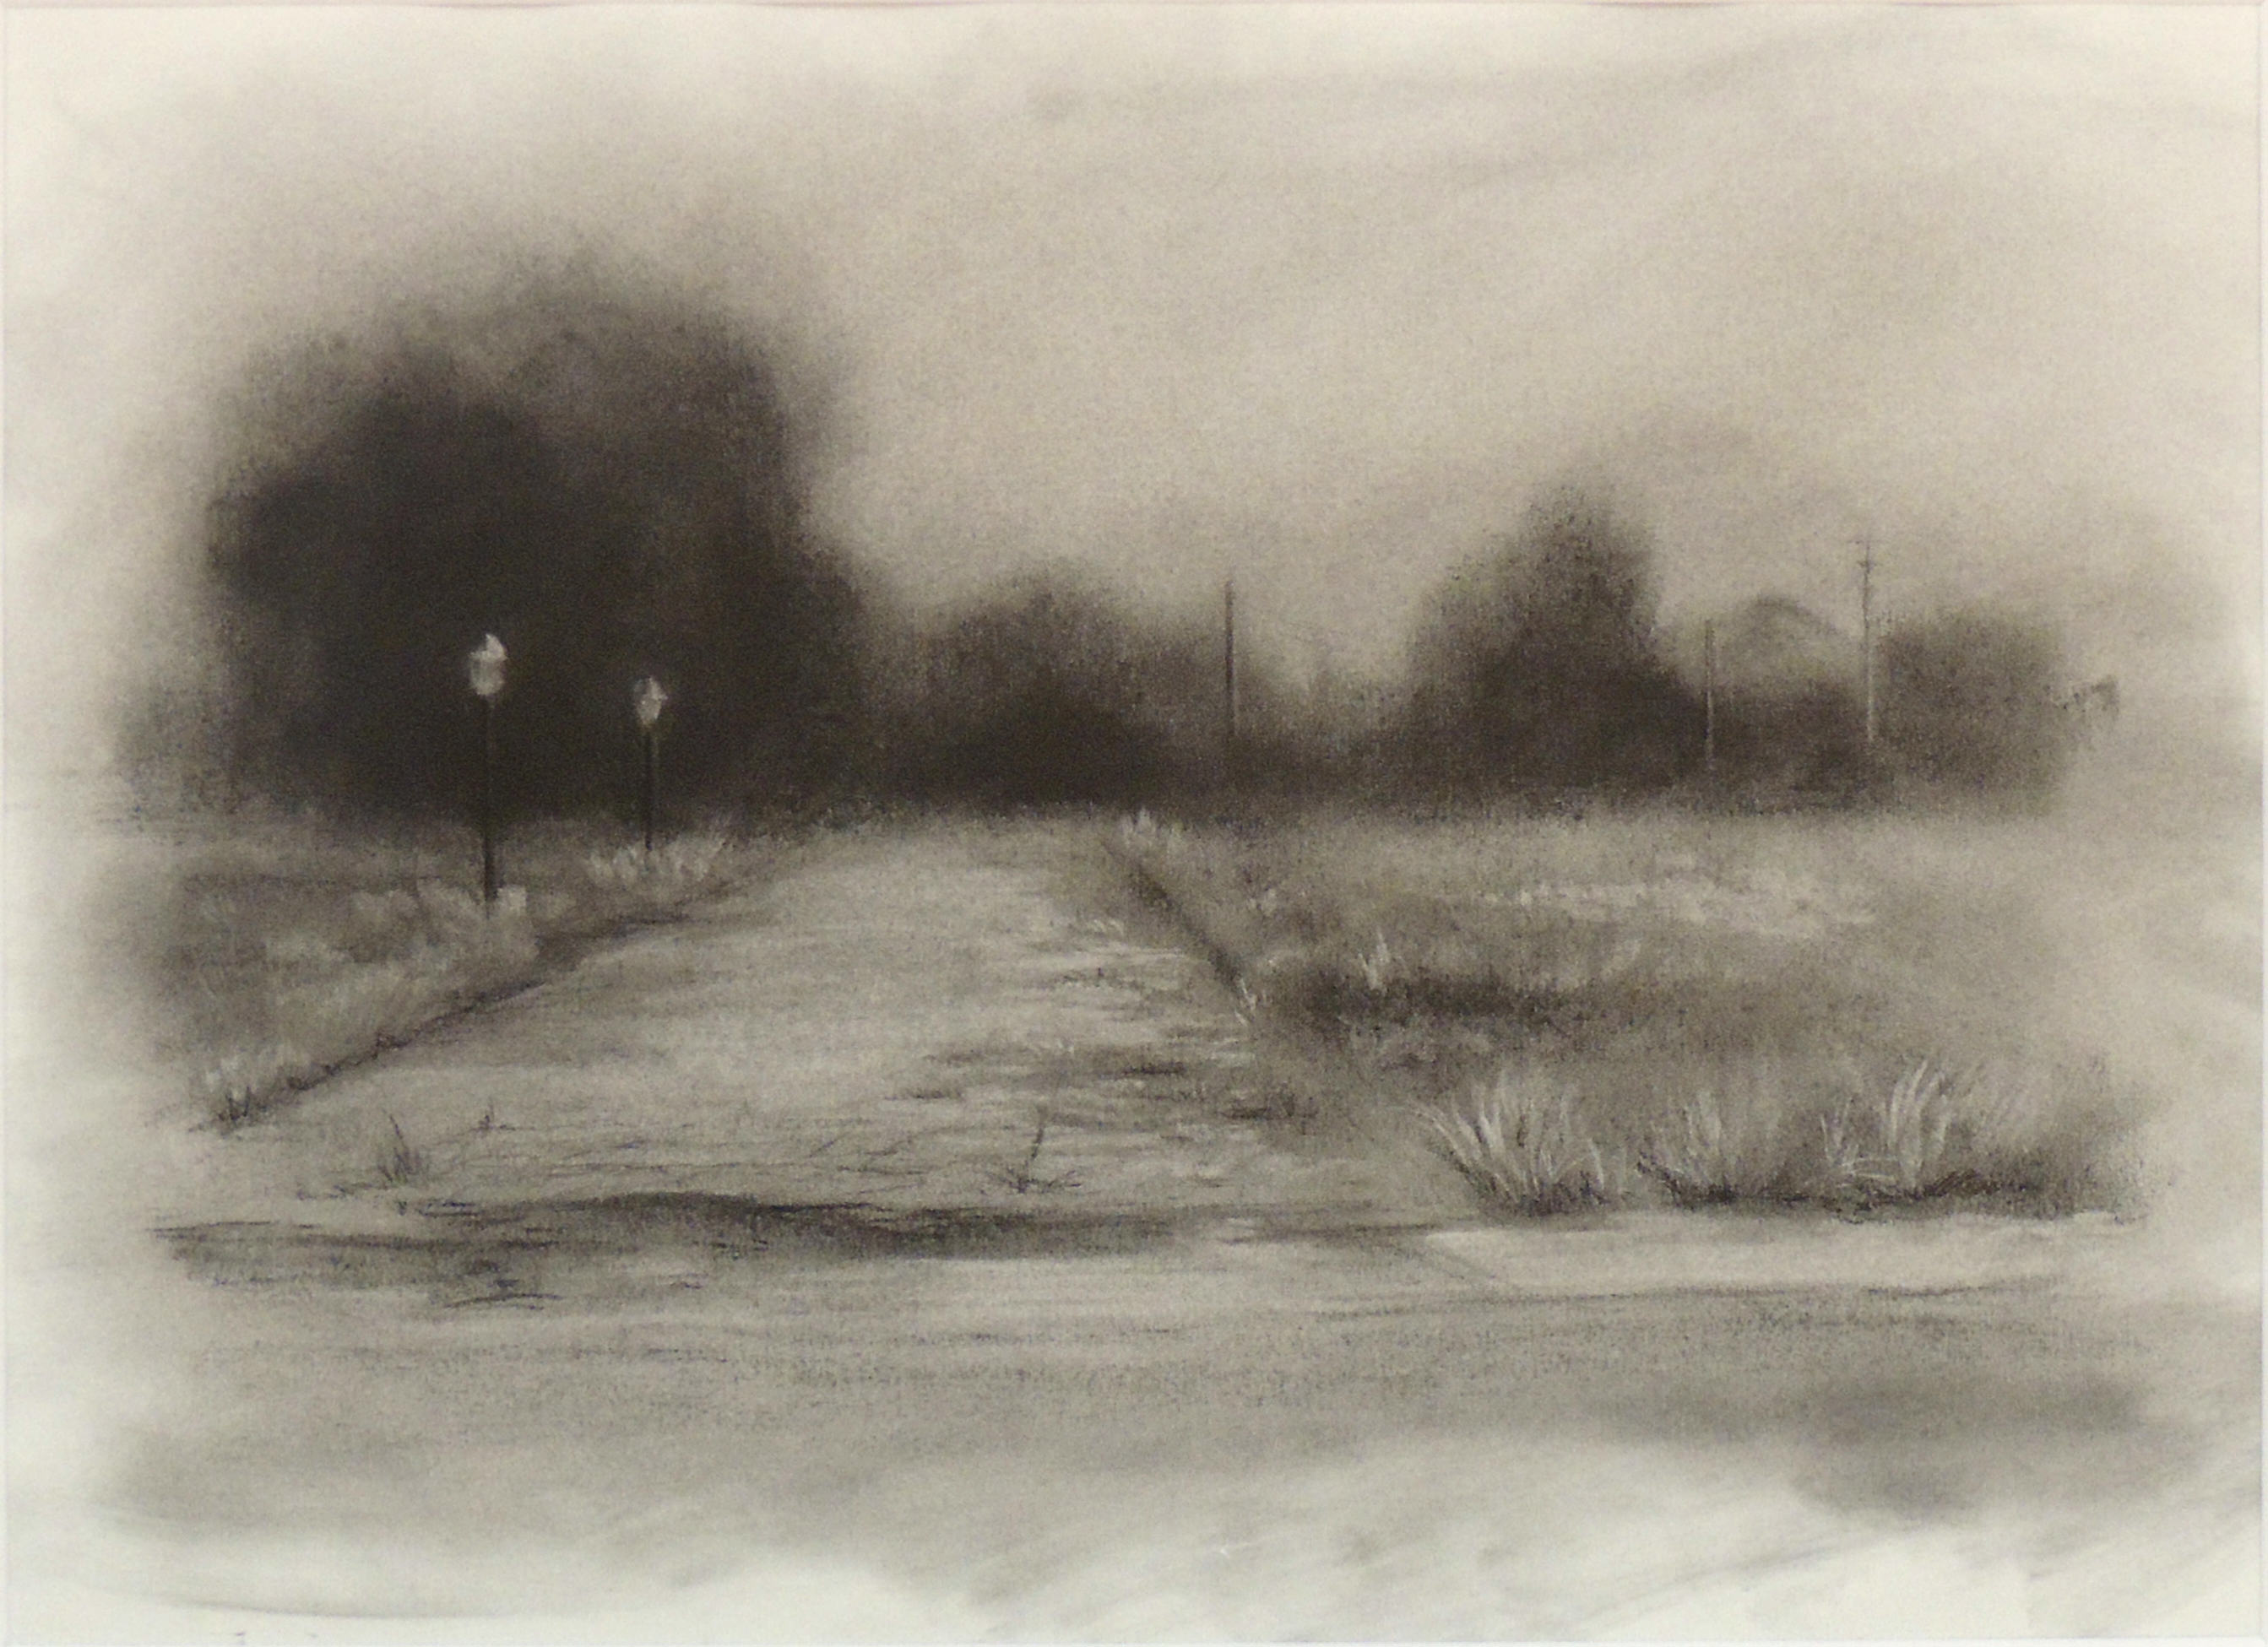 Kelley Booze | CHICORY LANE 1 | Charcoal on Paper